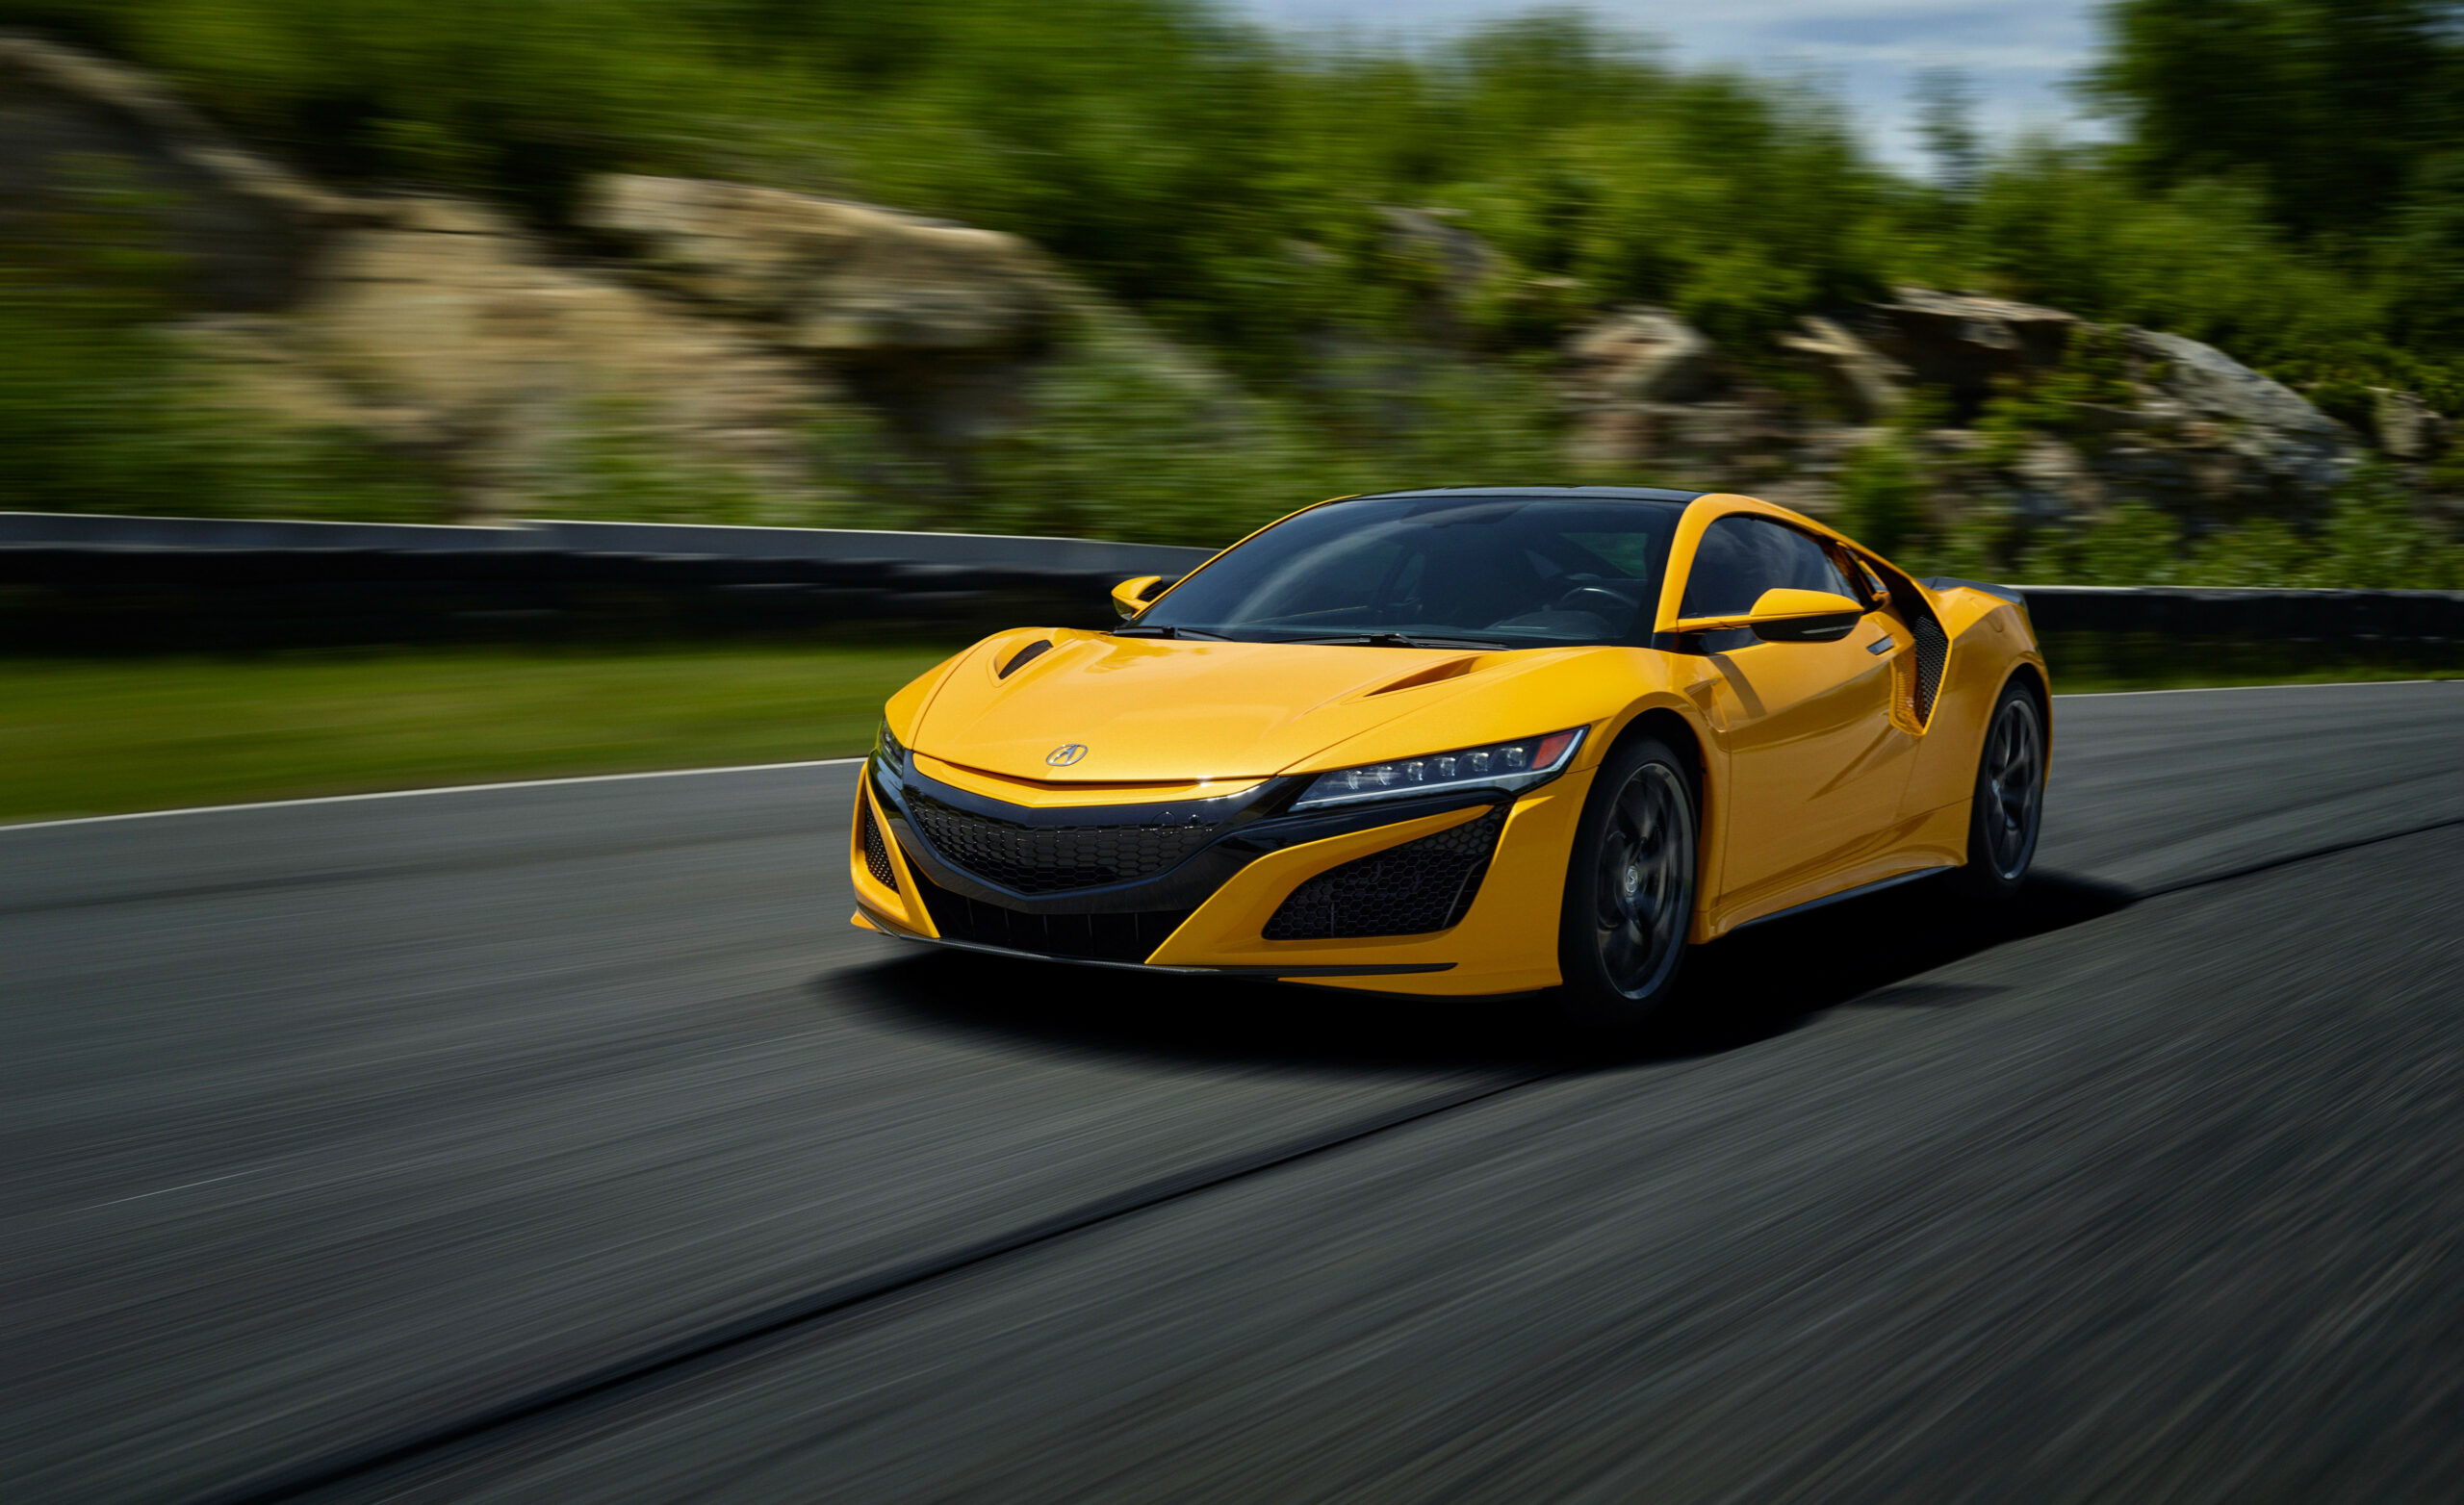 12 Acura NSX Review, Pricing, and Specs